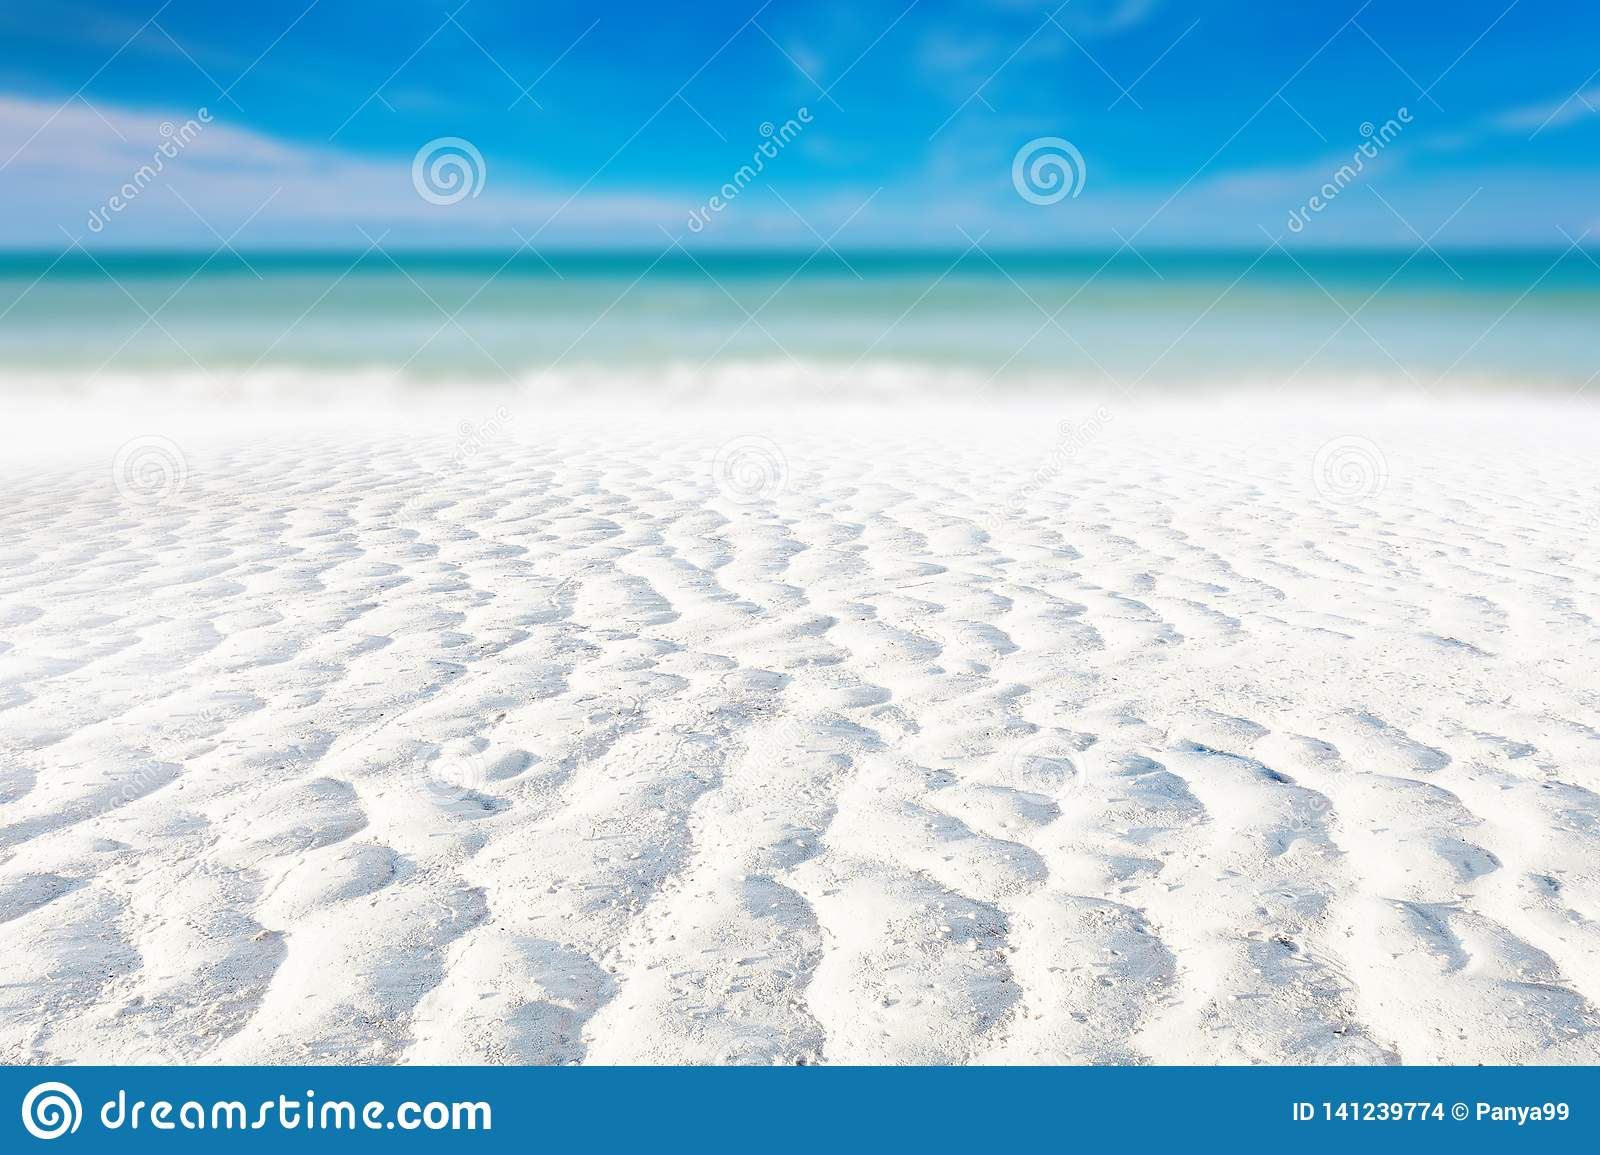 White sand curve or tropical sandy beach with blurry blue ocean and blue sky background image for nature background or summer